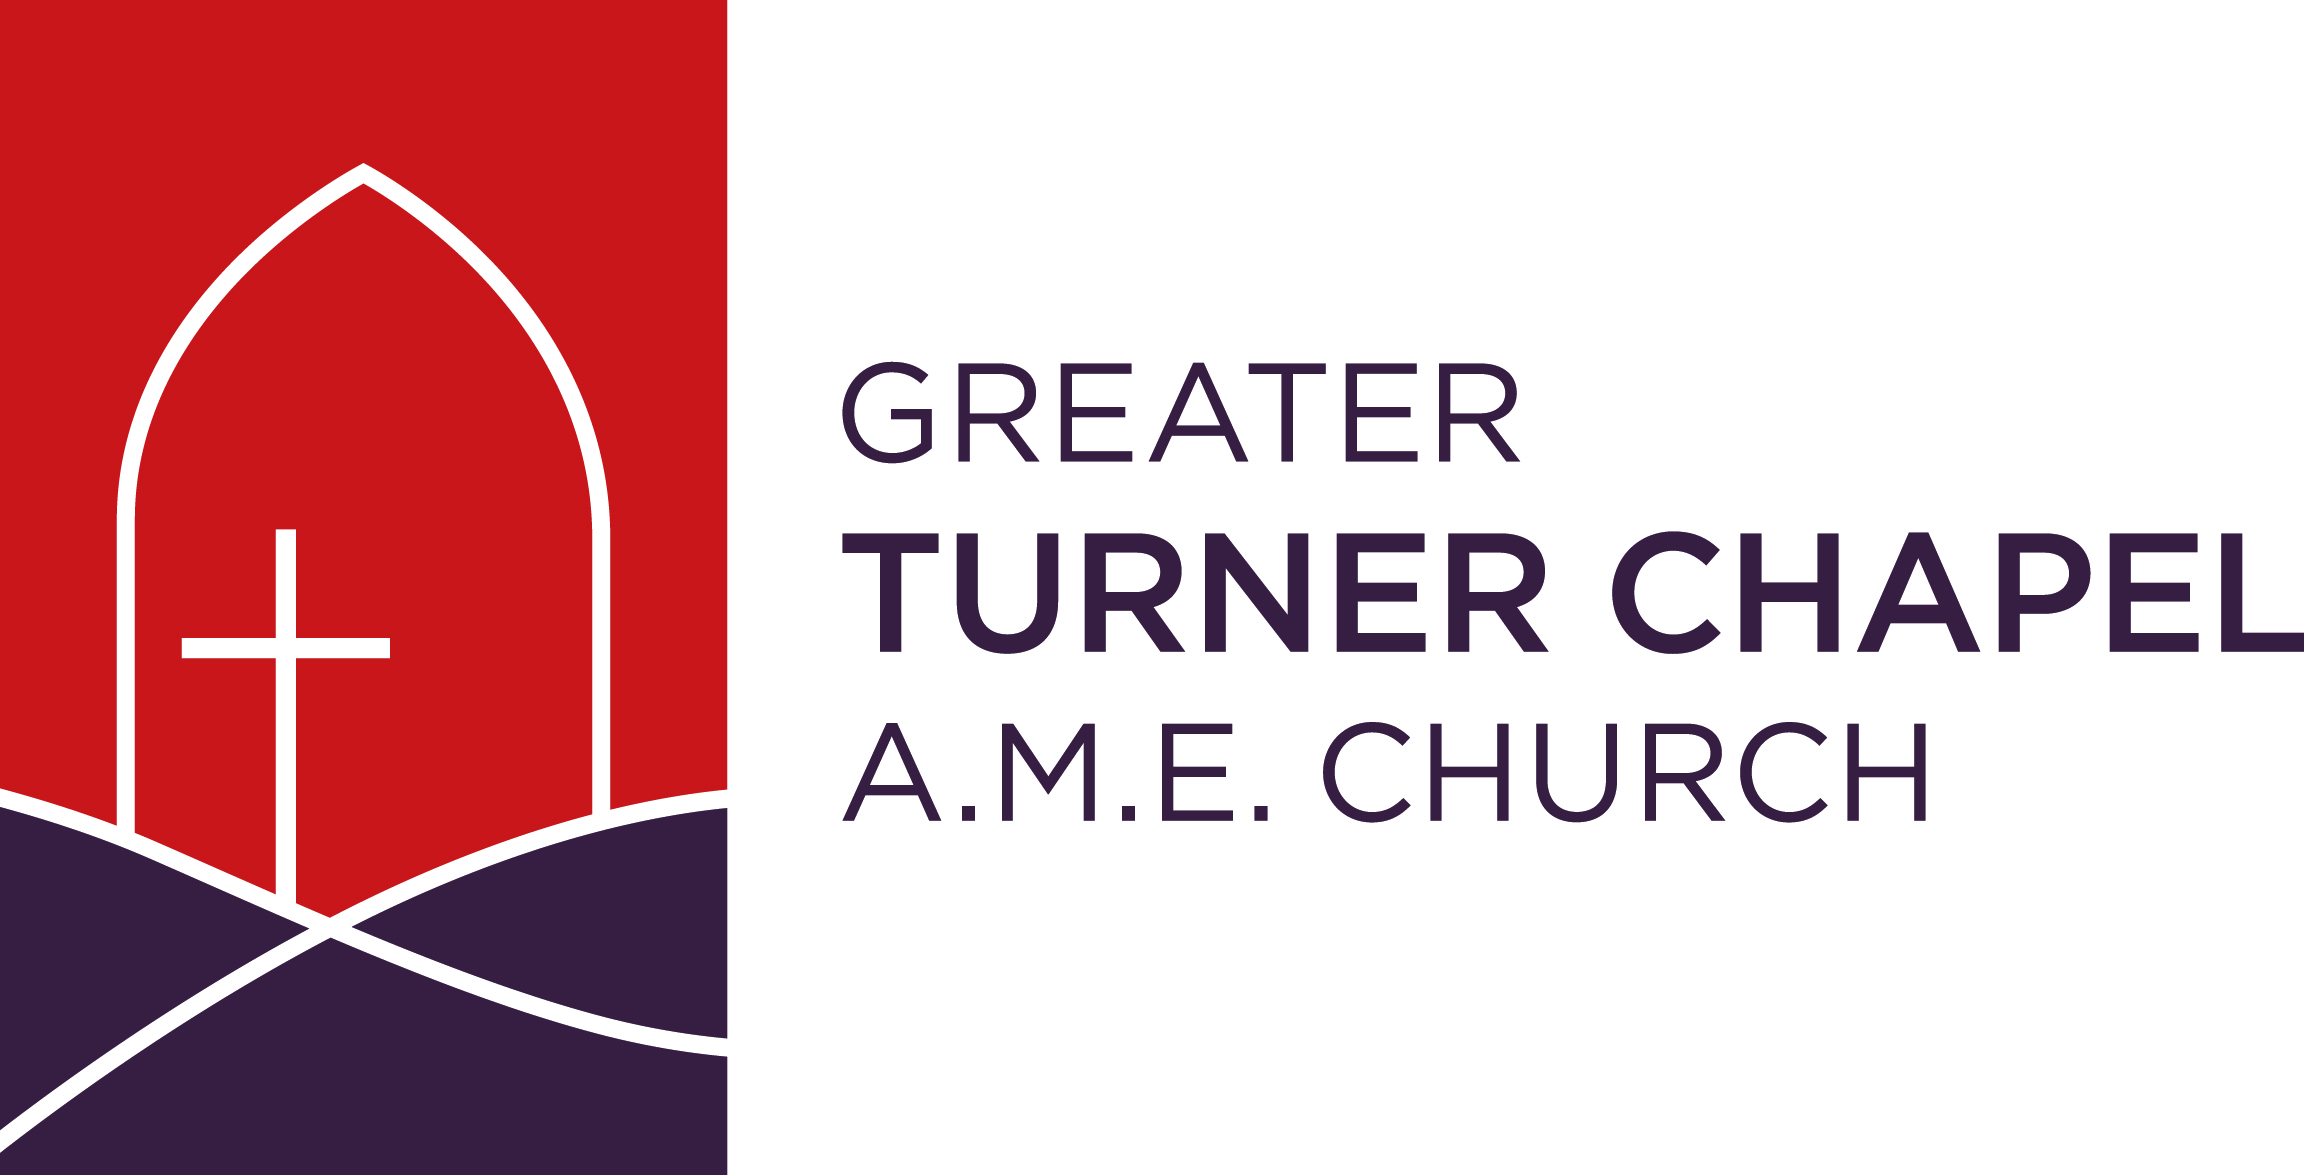 Greater Turner Chapelame Church